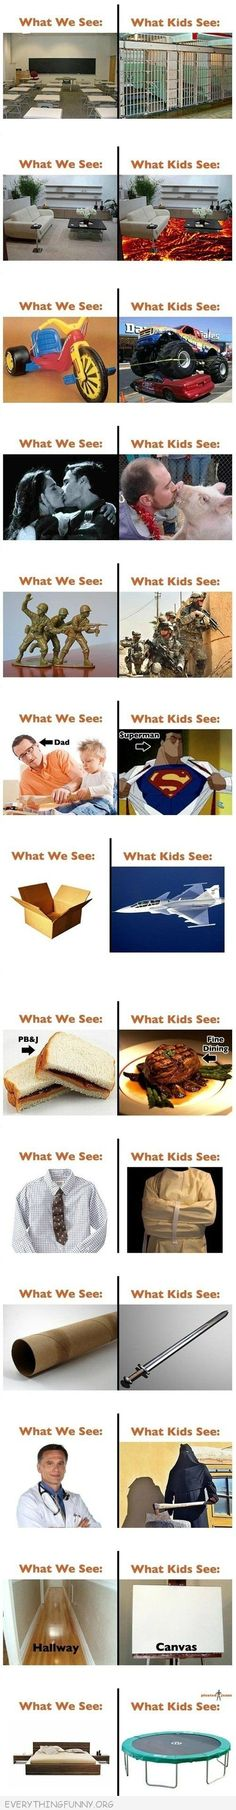 What we see - what kids see